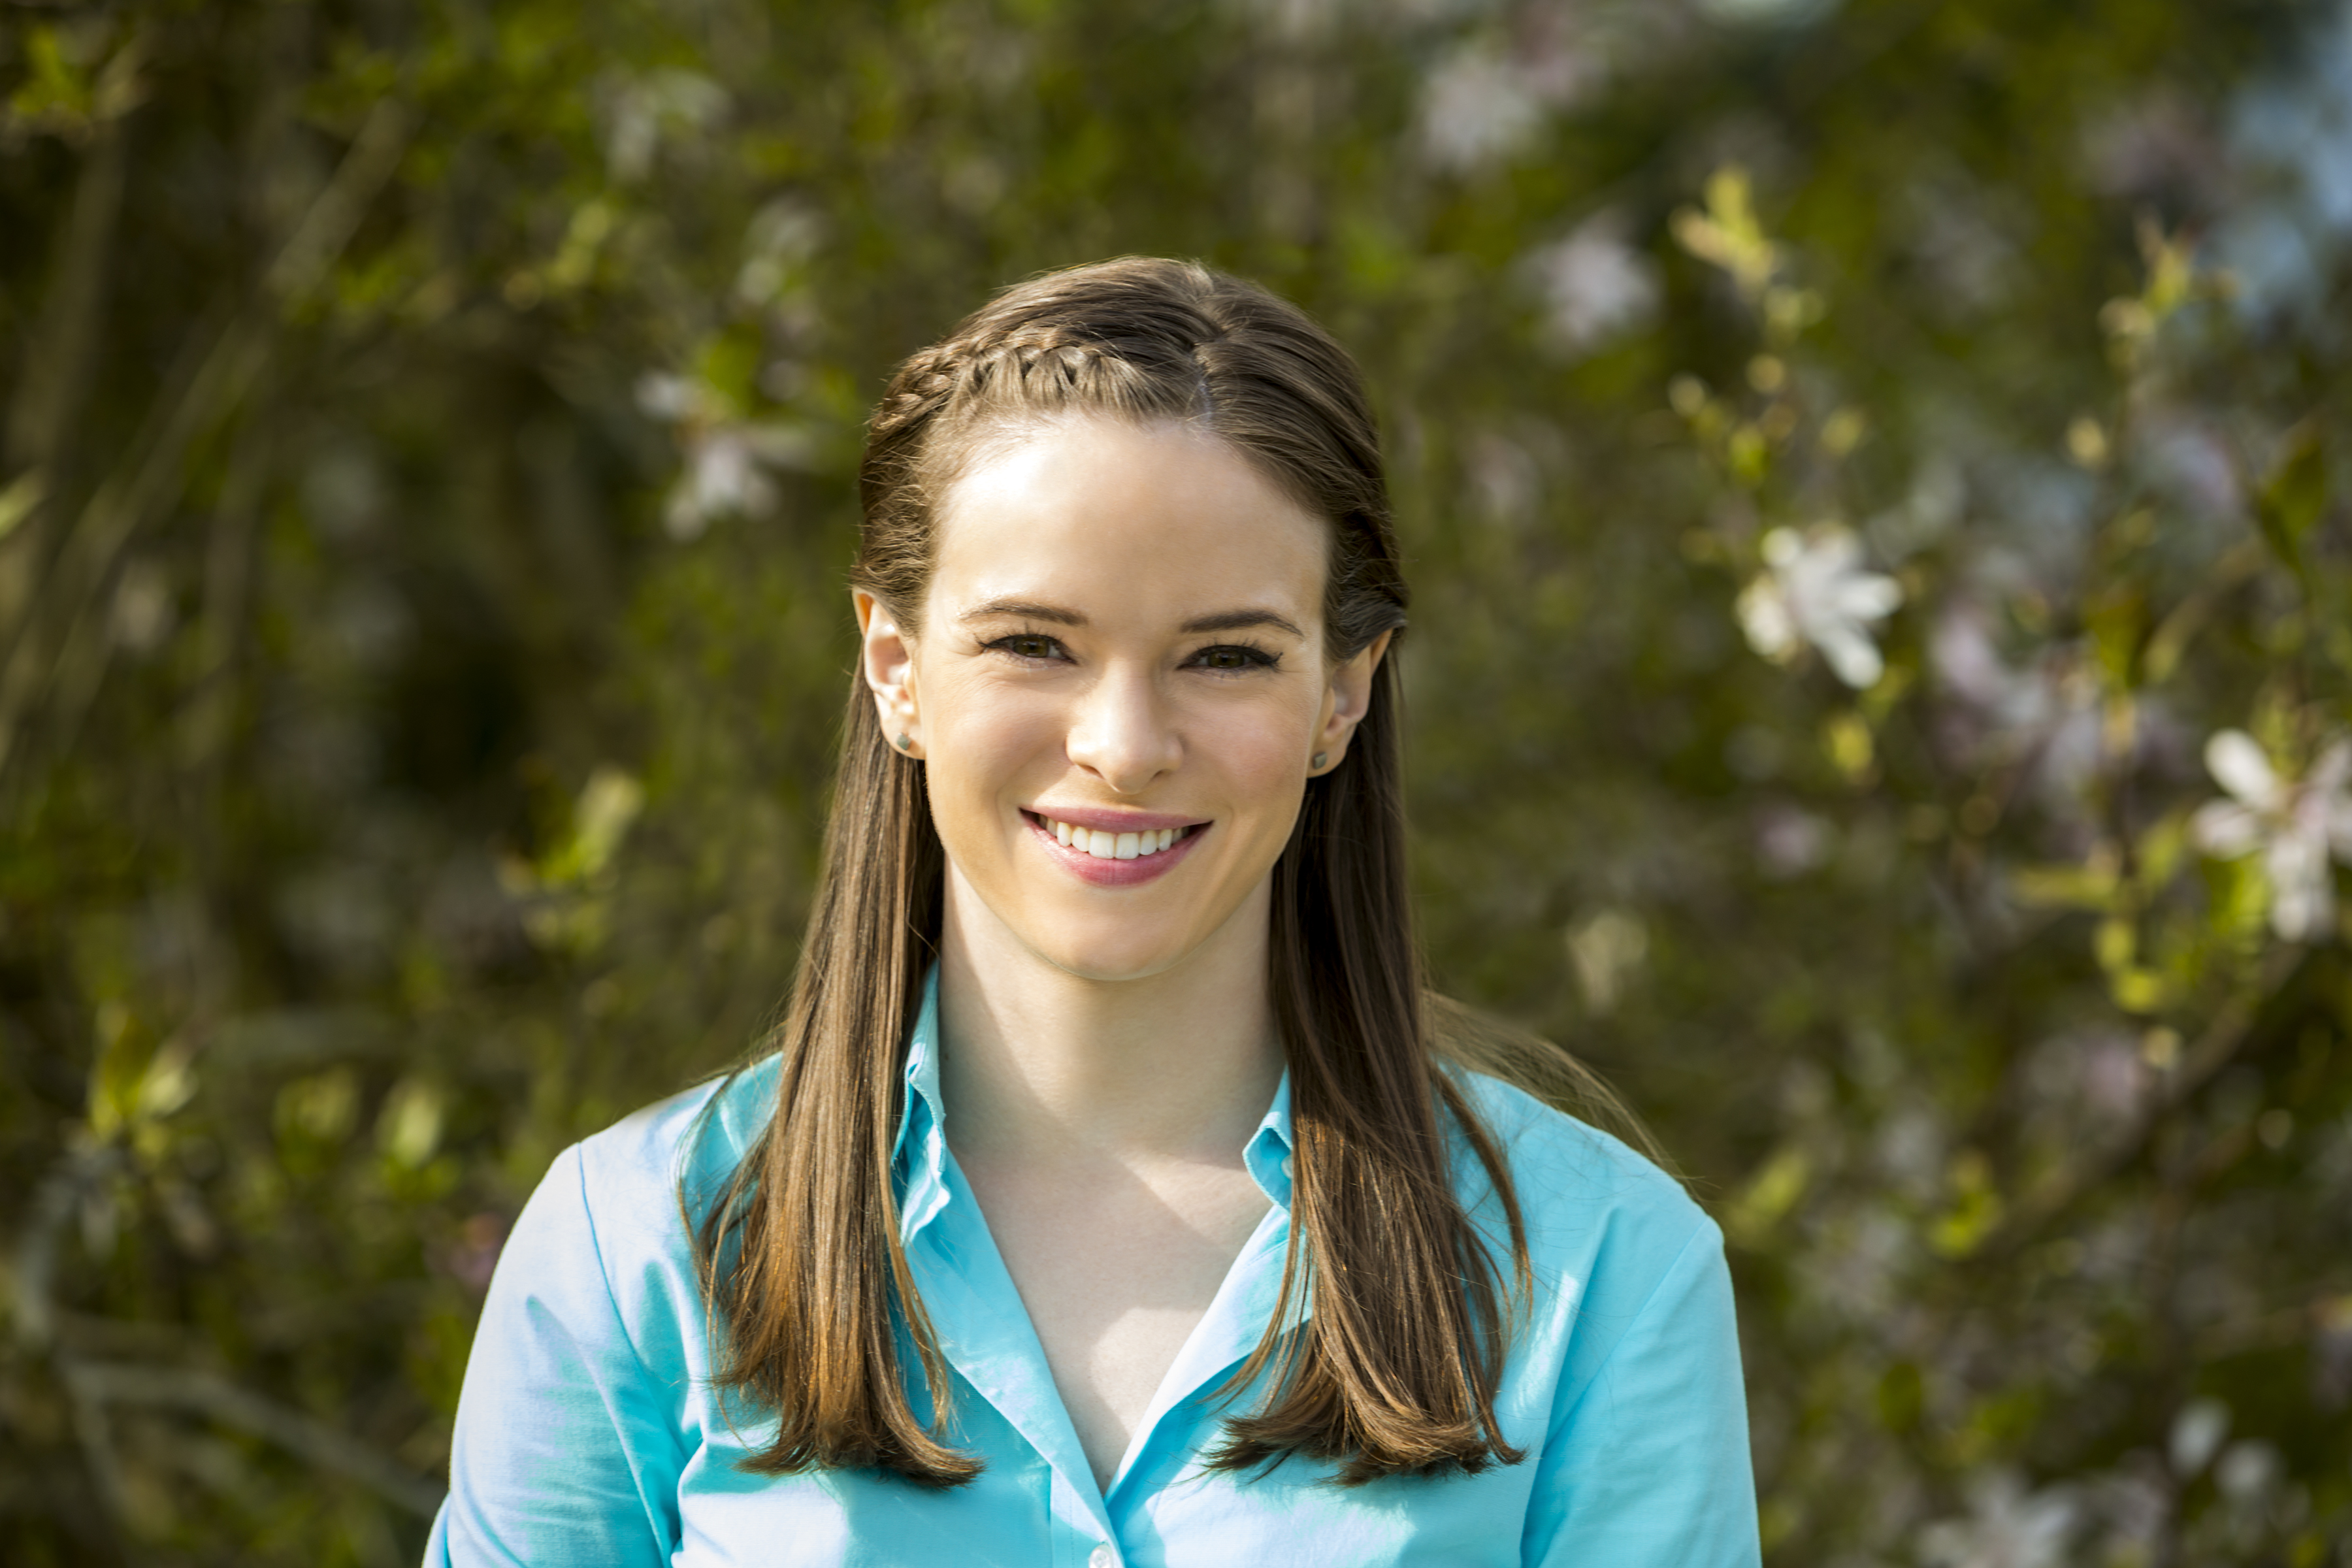 danielle panabaker and hayes robbinsdanielle panabaker gif, danielle panabaker instagram, danielle panabaker site, danielle panabaker and grant gustin, danielle panabaker with boyfriend, danielle panabaker insta, danielle panabaker tumblr gif, danielle panabaker wikipedia, danielle panabaker and hayes robbins, danielle panabaker husband, danielle panabaker young, danielle panabaker sky high, danielle panabaker png, danielle panabaker celebmafia, danielle panabaker cole sprouse, danielle panabaker heels, danielle panabaker dance, danielle panabaker website, danielle panabaker elizabeth henstridge, danielle panabaker songs